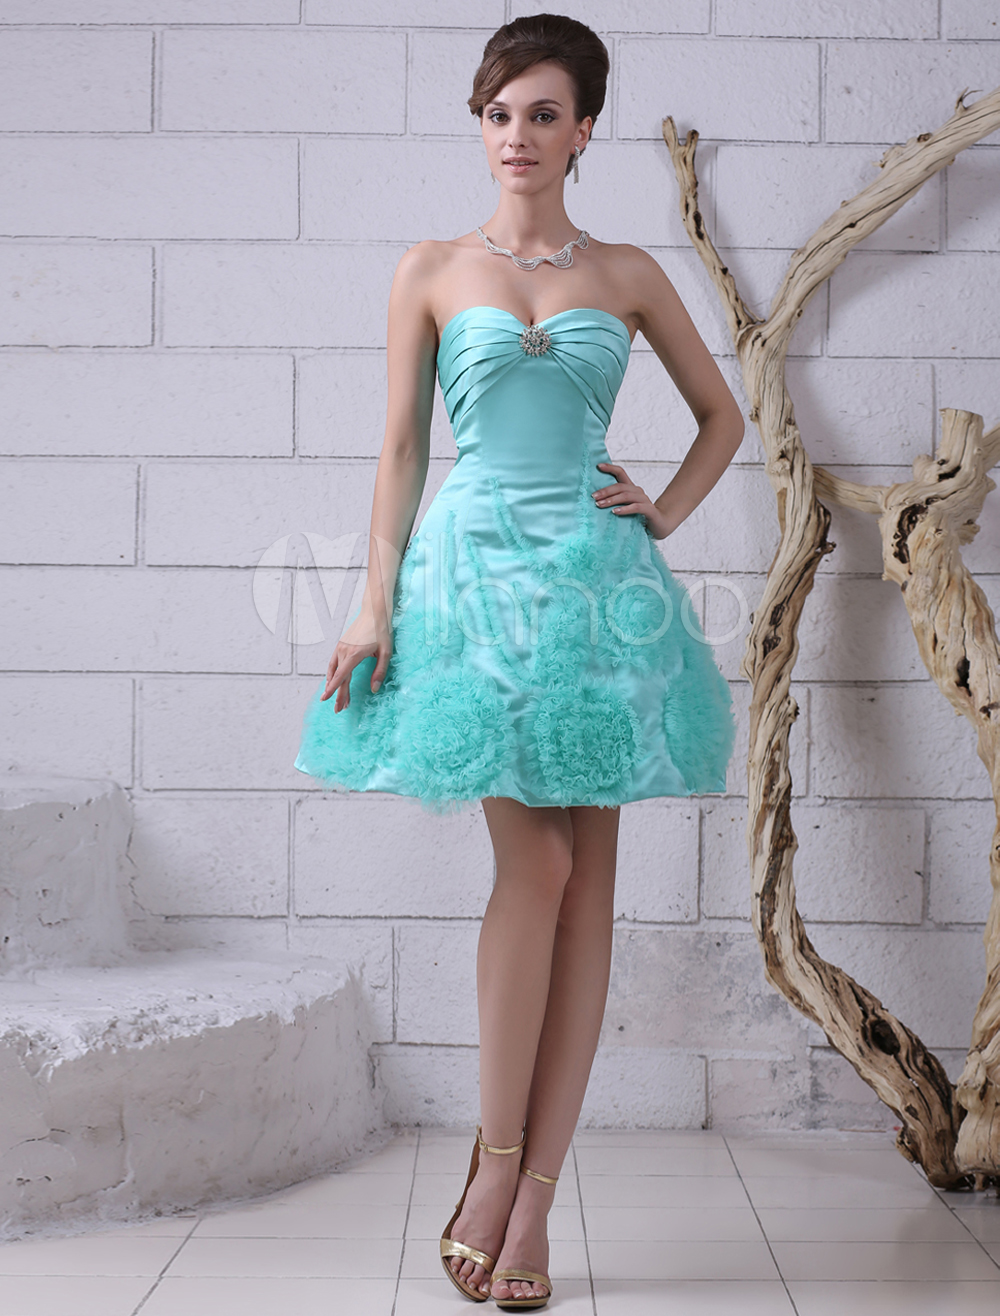 Buy Satin Prom Dress Turquoise Flowers Beaded Cocktail Dress Strapless Sweetheart Sleeveless Ruched A Line Short Party Dress Milanoo for $139.99 in Milanoo store